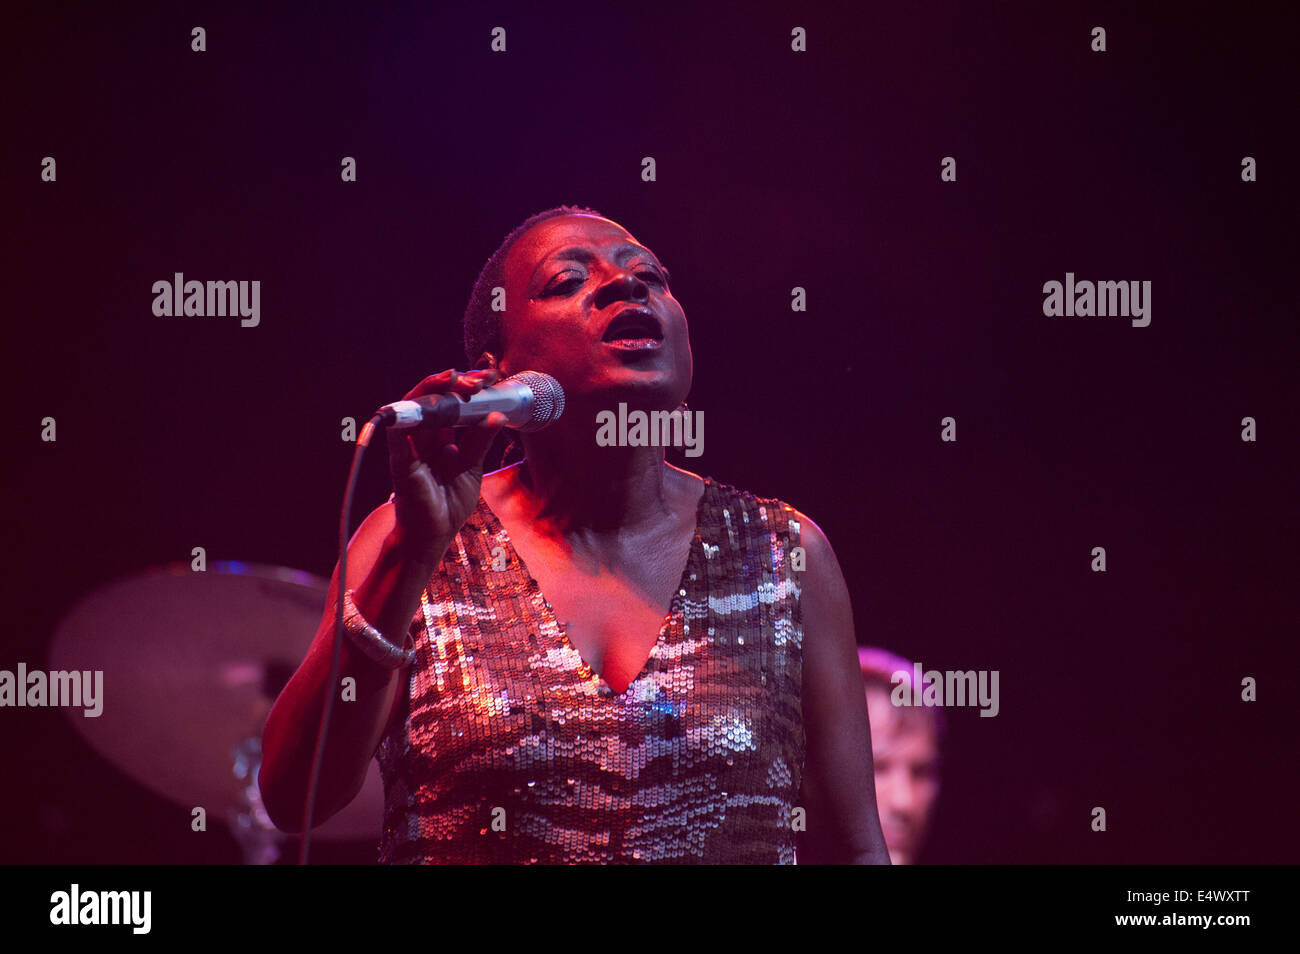 New York, US. 16th July, 2014. Sharon Jones, 58, unleashed a torrent of energy as she performed with the Dap-Kings - Stock Image